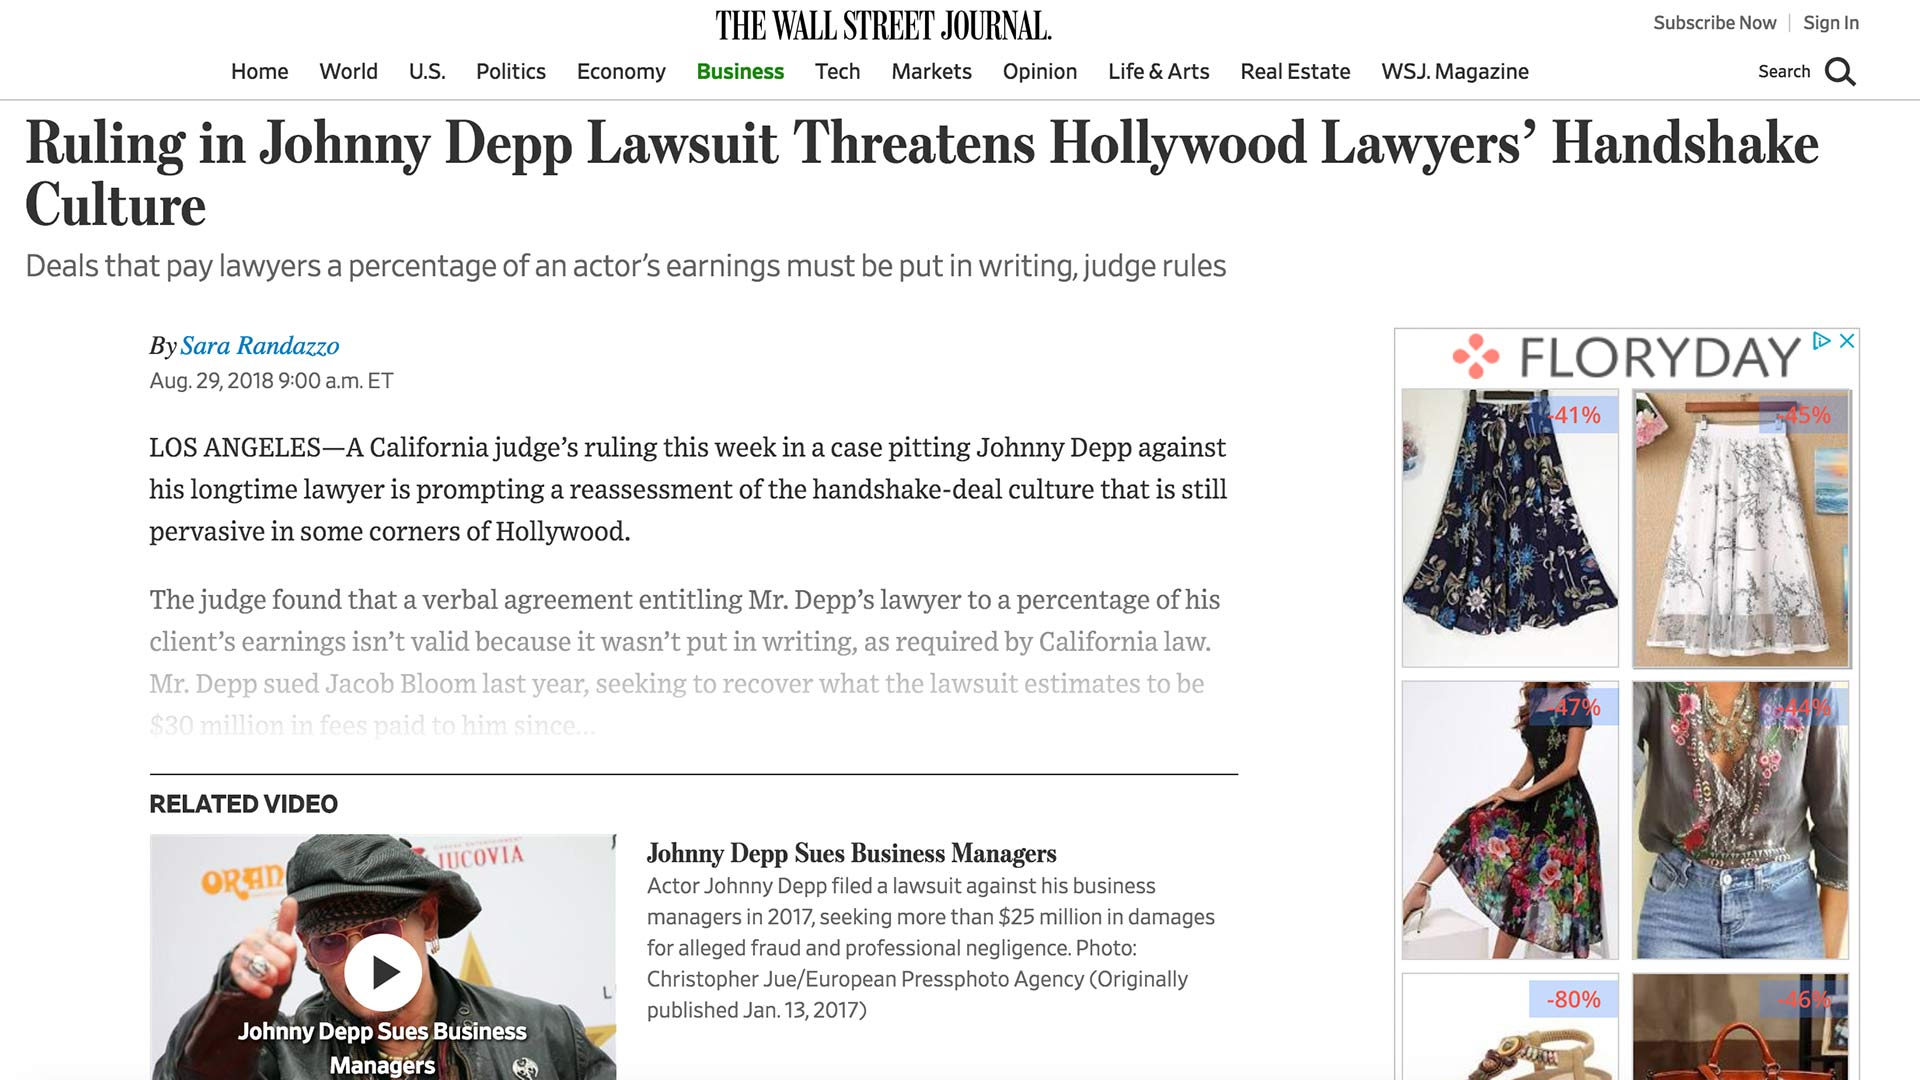 Fairness Rocks News Ruling in Johnny Depp Lawsuit Threatens Hollywood Lawyers' Handshake Culture